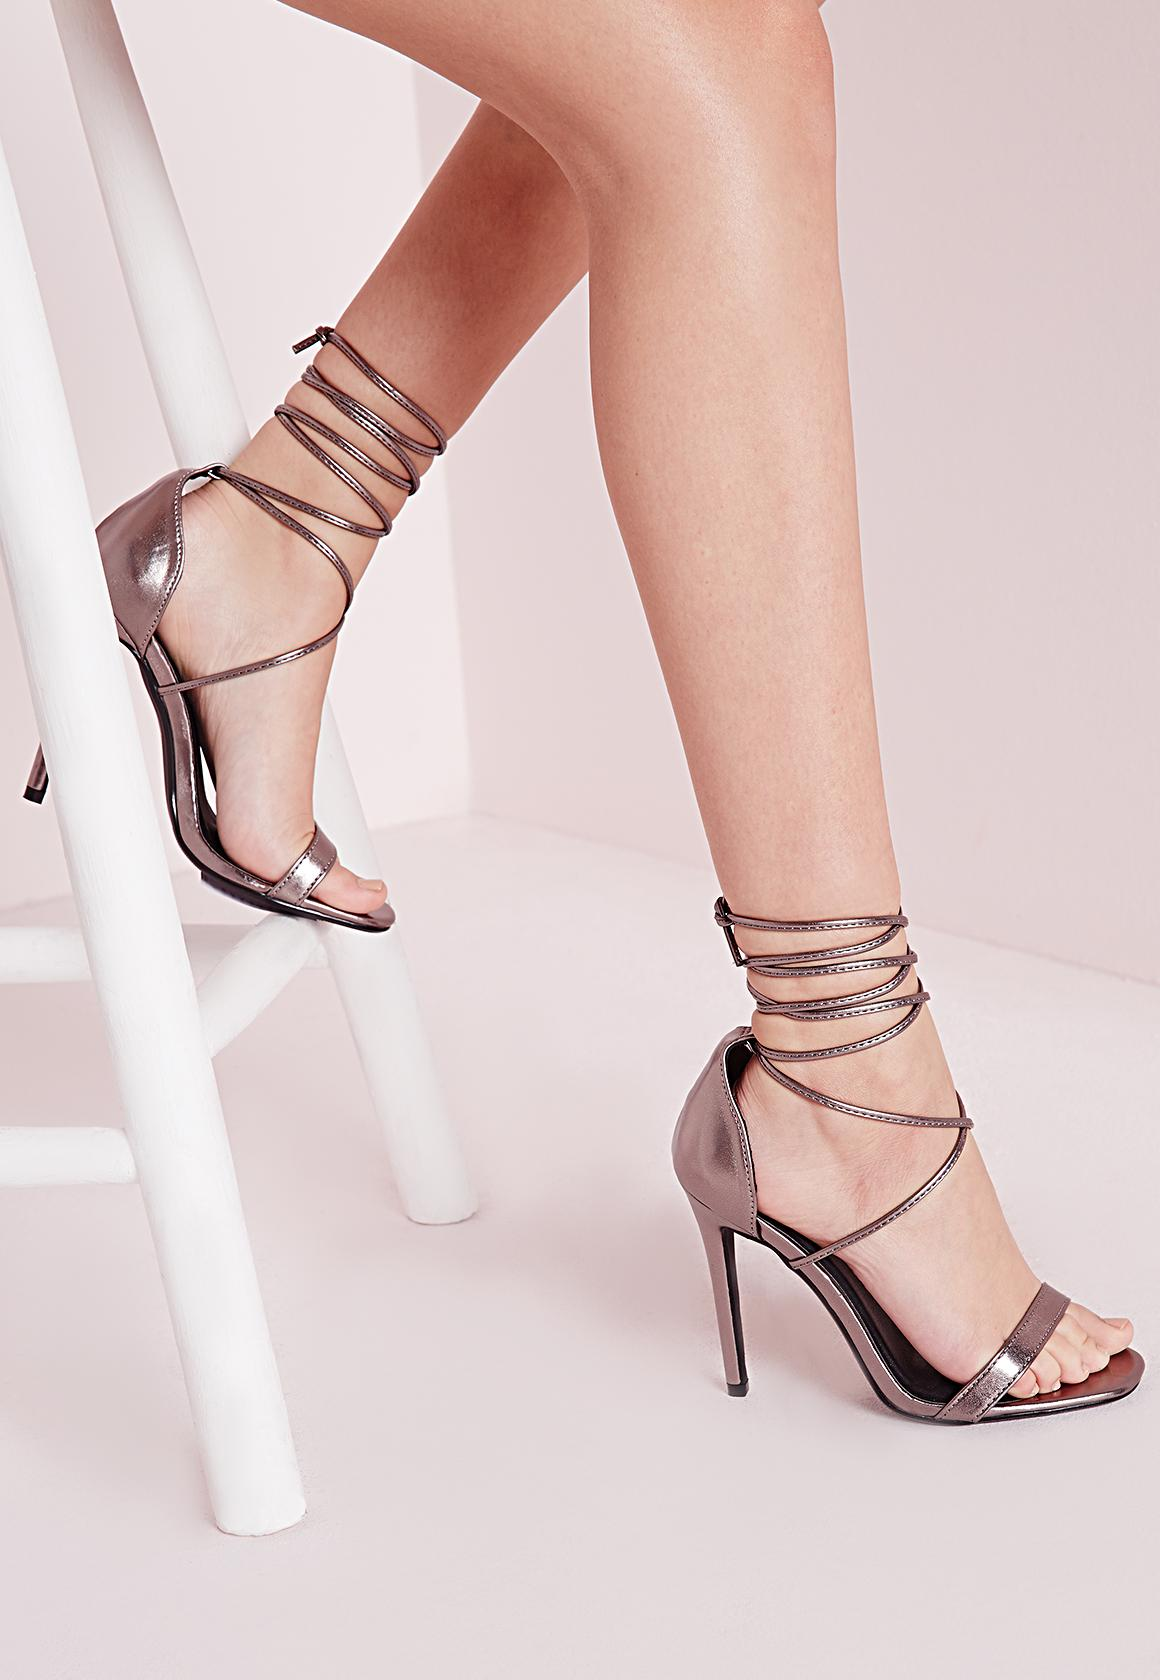 Barely There Heeled Sandals - Silver Missguided a5tvH